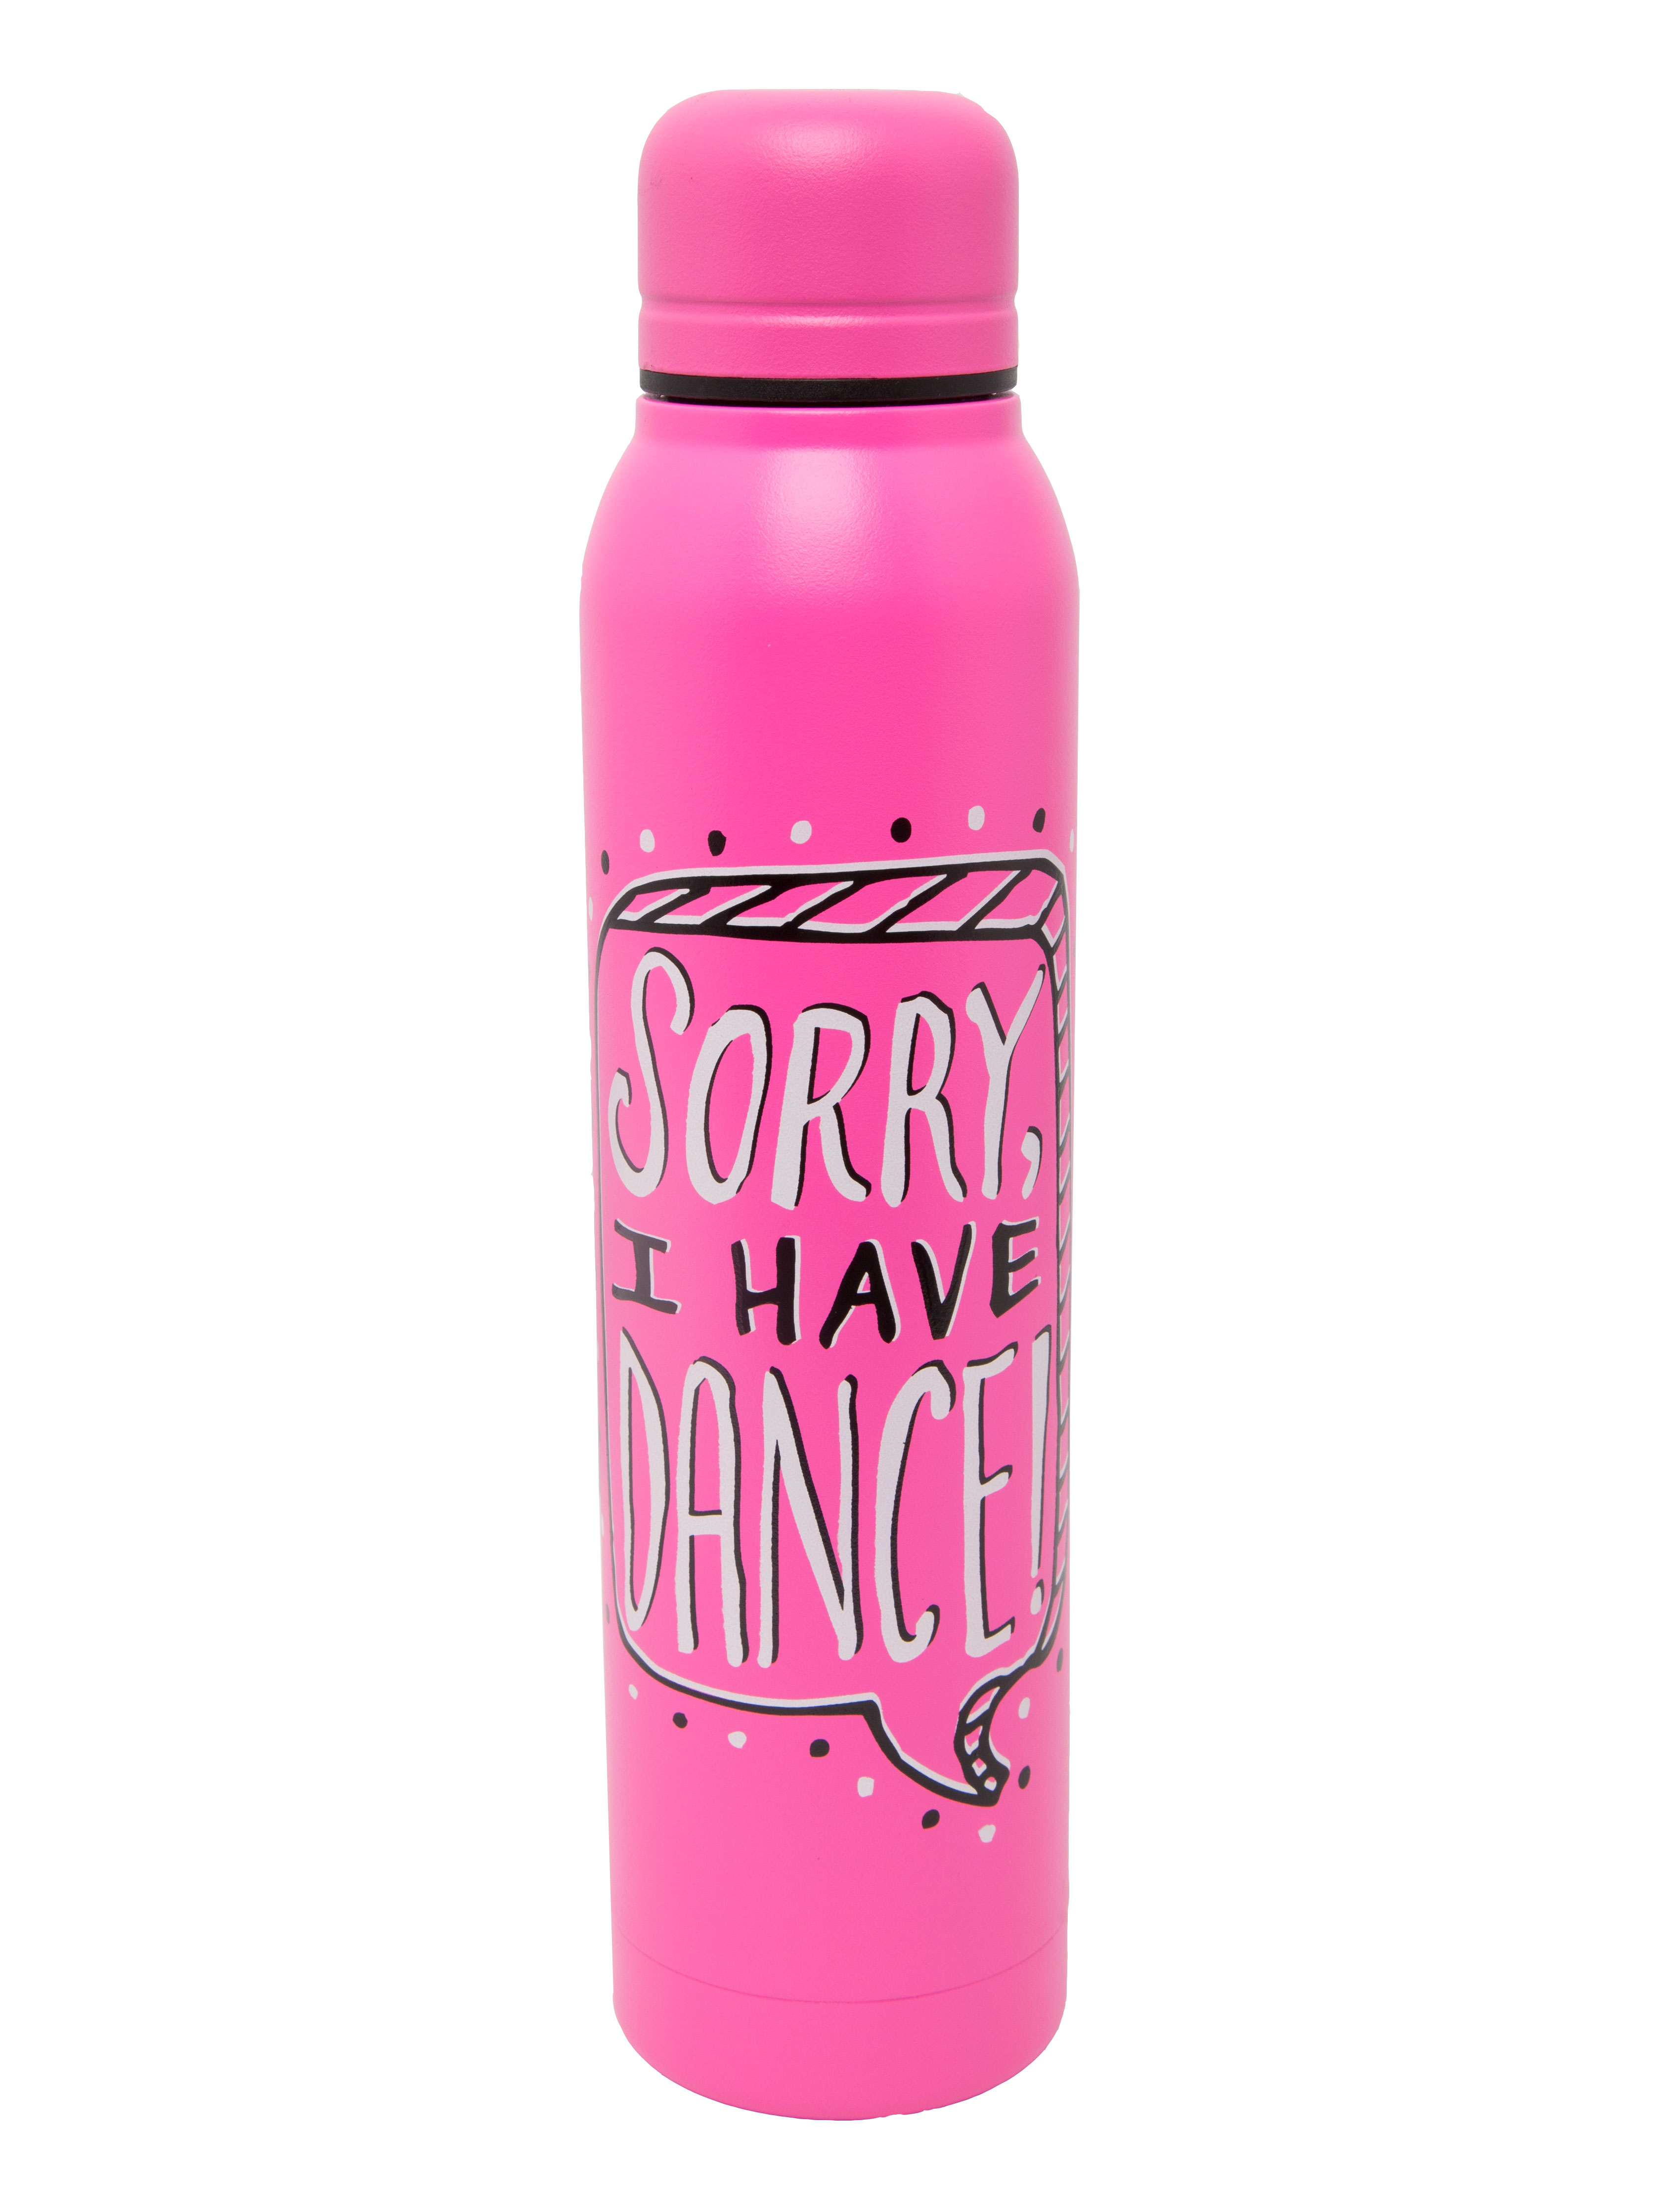 Sorry, I have Dance Bottle by Sugar and Bruno